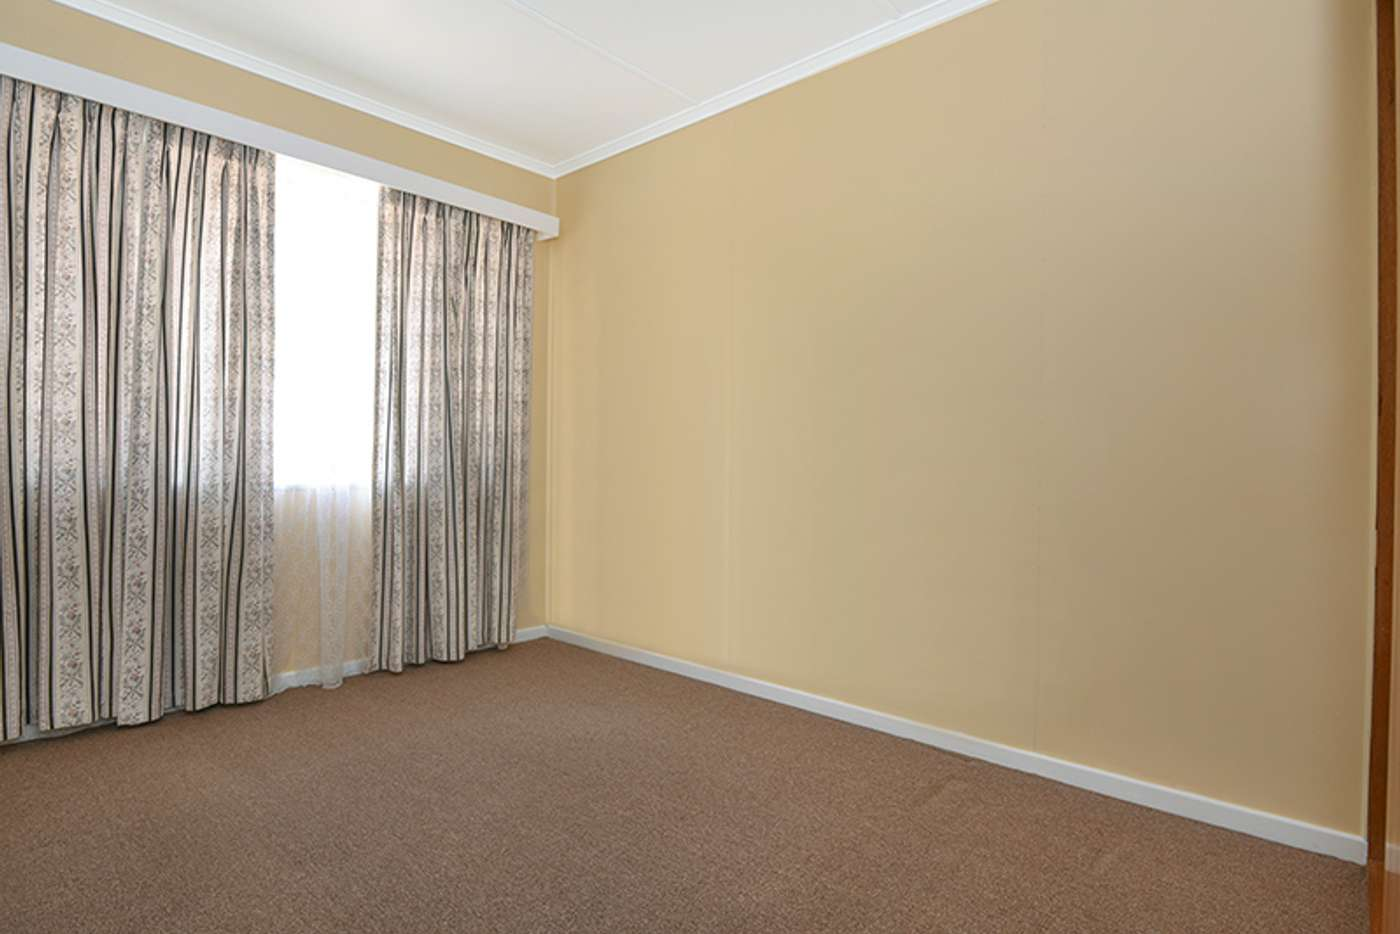 Seventh view of Homely house listing, 17 Lyndall Street, Harristown QLD 4350